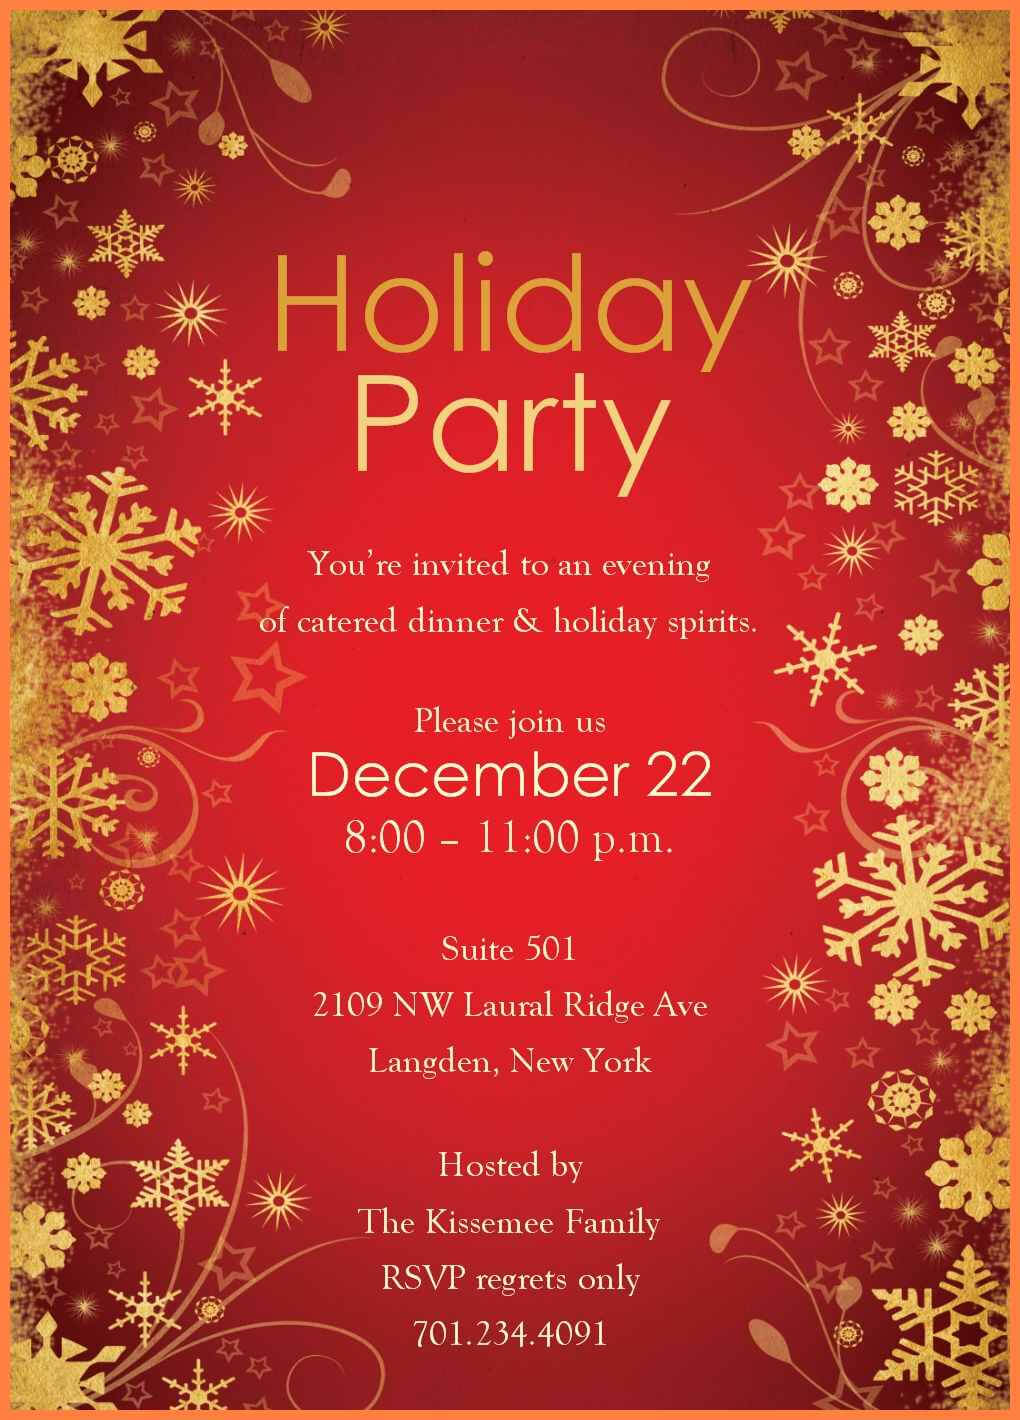 10+ Free Party Templates For Word | Andrew Gunsberg pertaining to Free Dinner Invitation Templates For Word